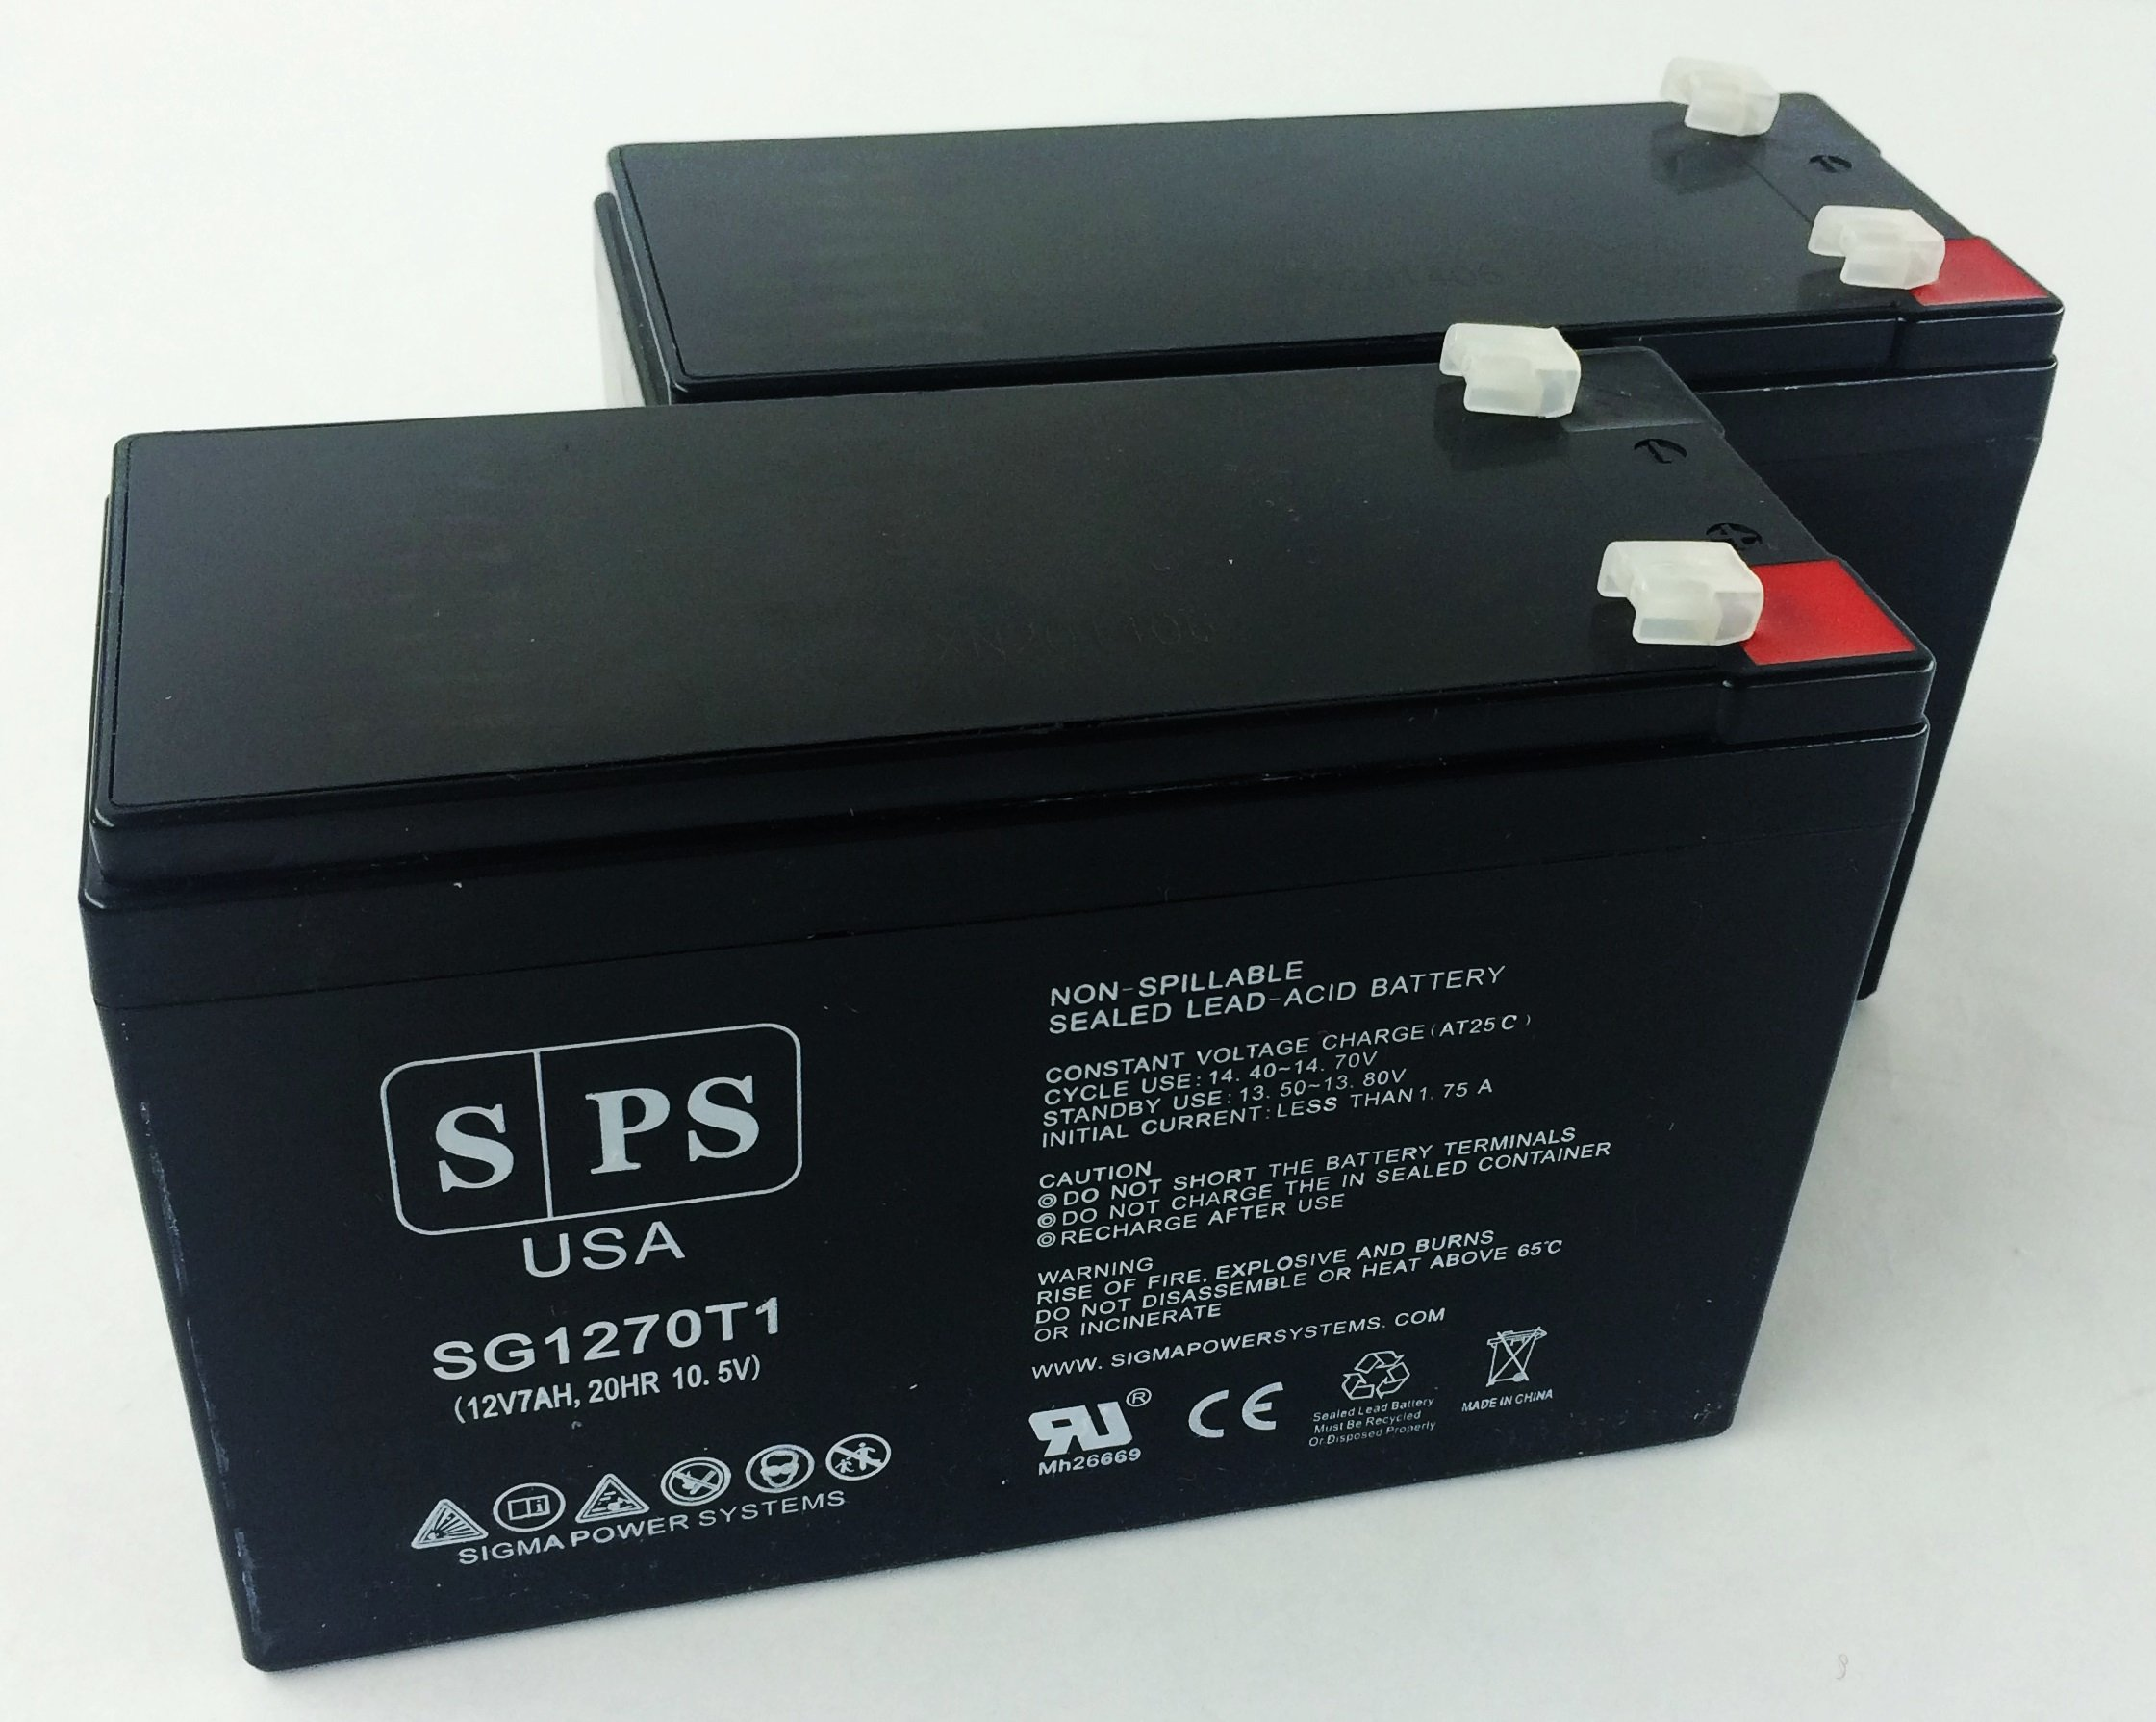 12V 7Ah (From SPS) Roche Diagnostics 7640 Microgas Monitor Medical Replacement Battery ( 2 Pack)